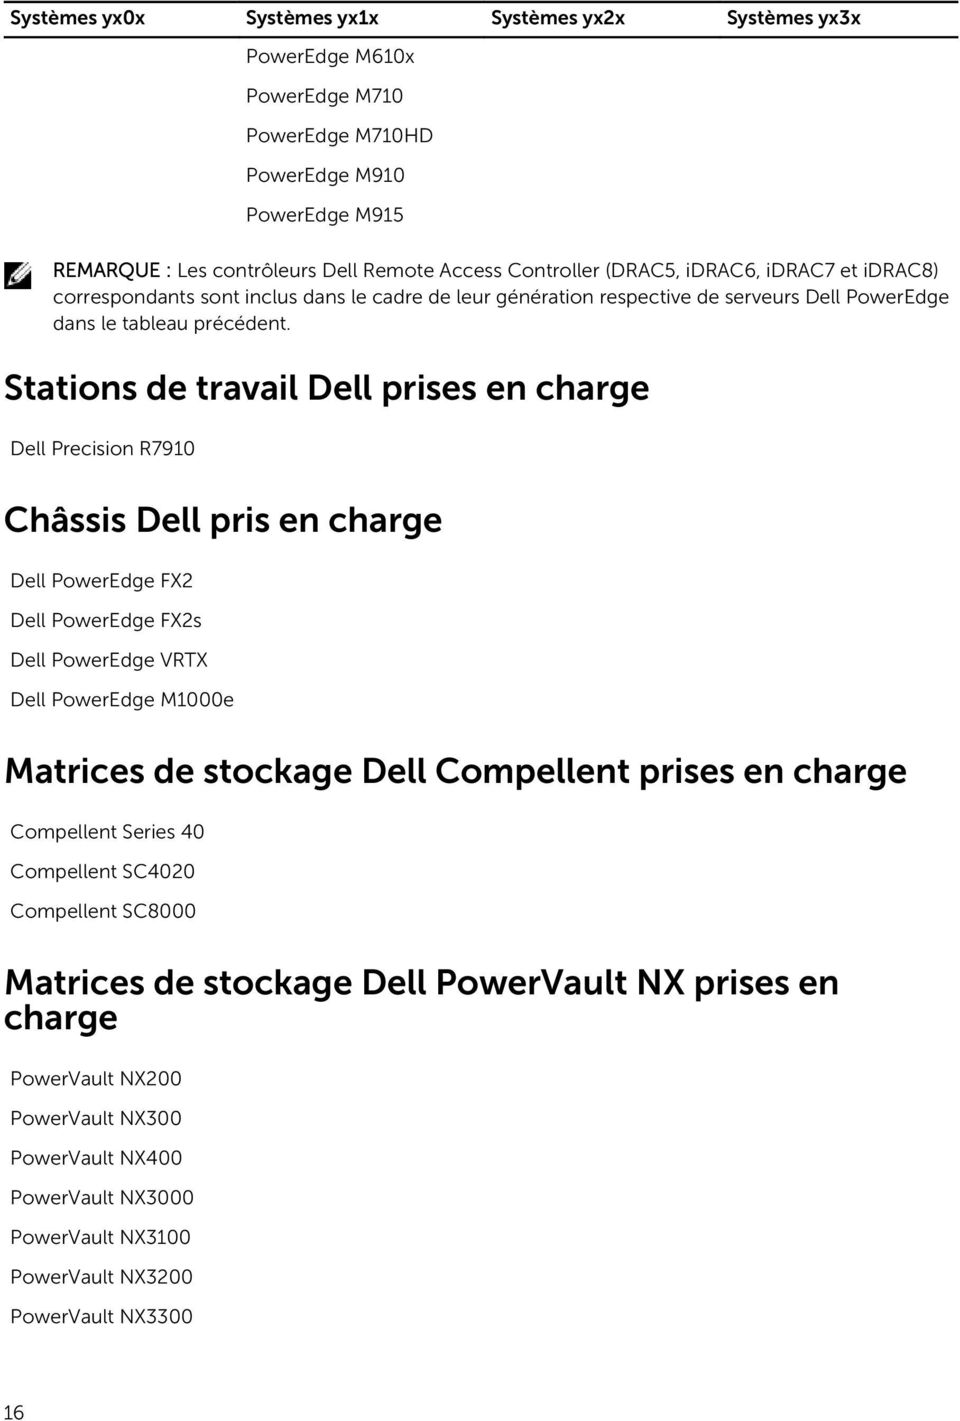 Stations de travail Dell prises en charge Dell Precision R7910 Châssis Dell pris en charge Dell PowerEdge FX2 Dell PowerEdge FX2s Dell PowerEdge VRTX Dell PowerEdge M1000e Matrices de stockage Dell